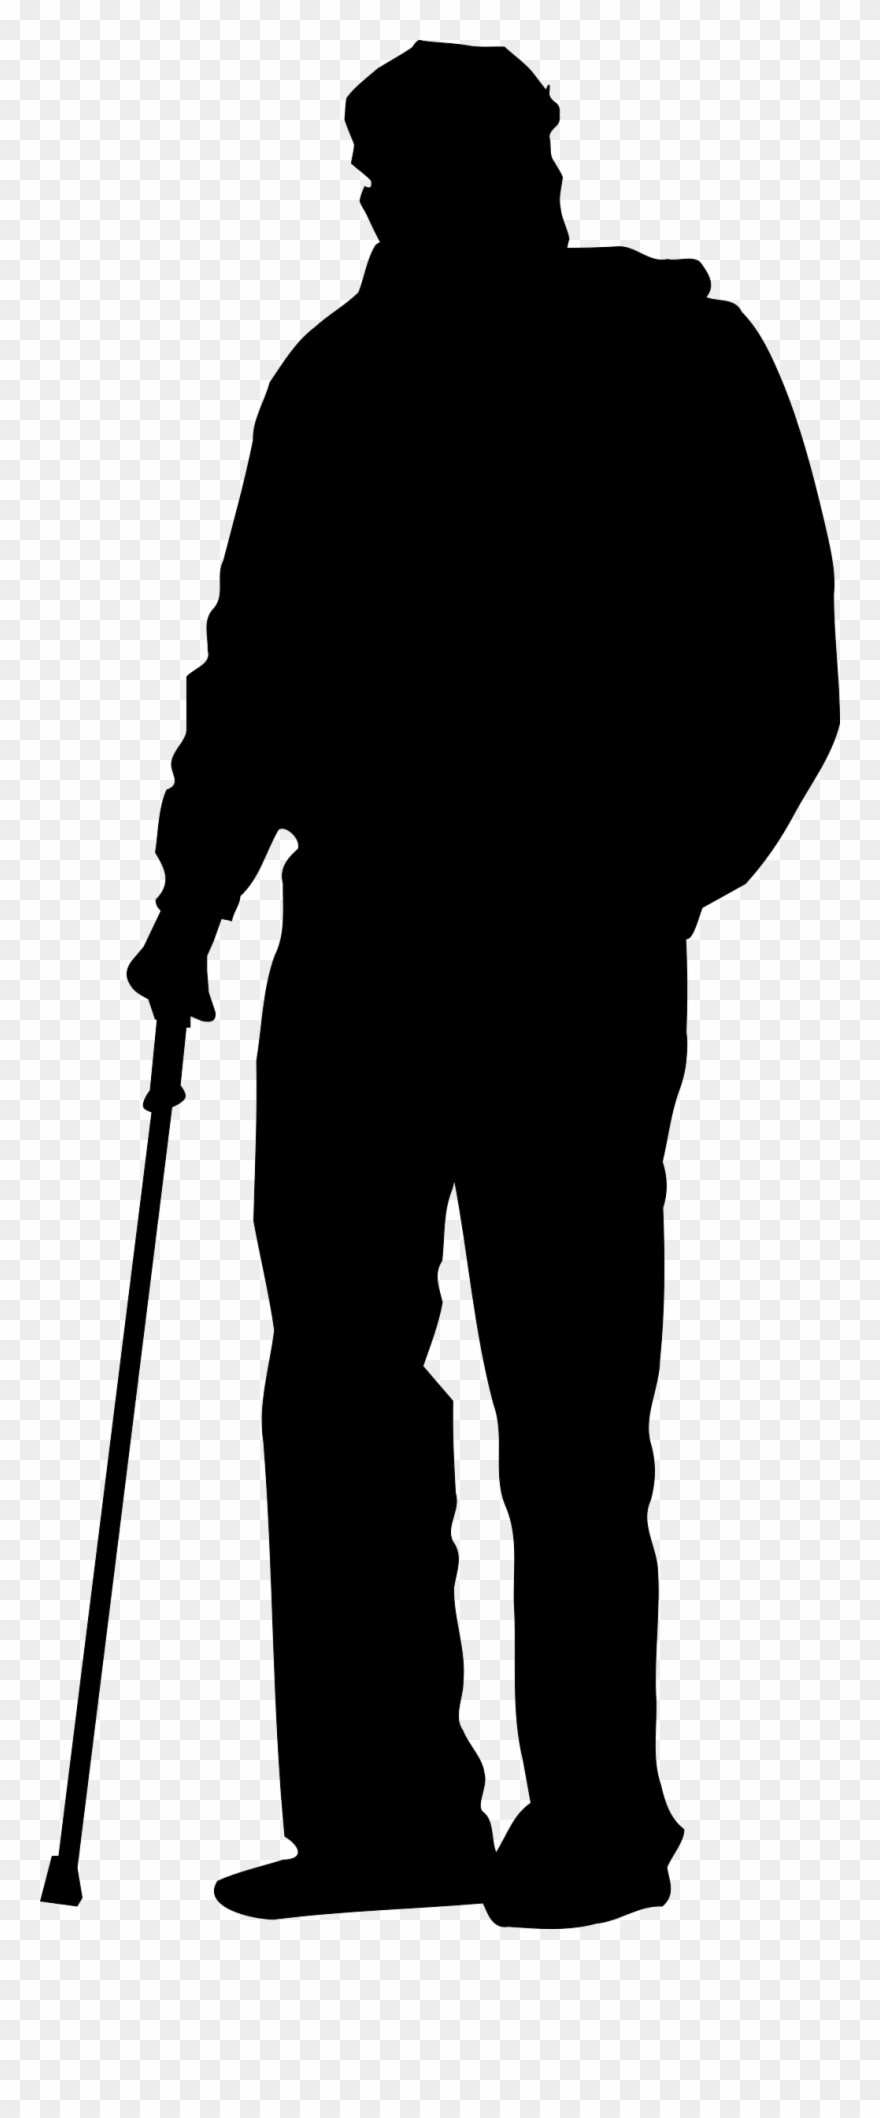 old man silhouette silhouette old man walking stock illustration download silhouette old man